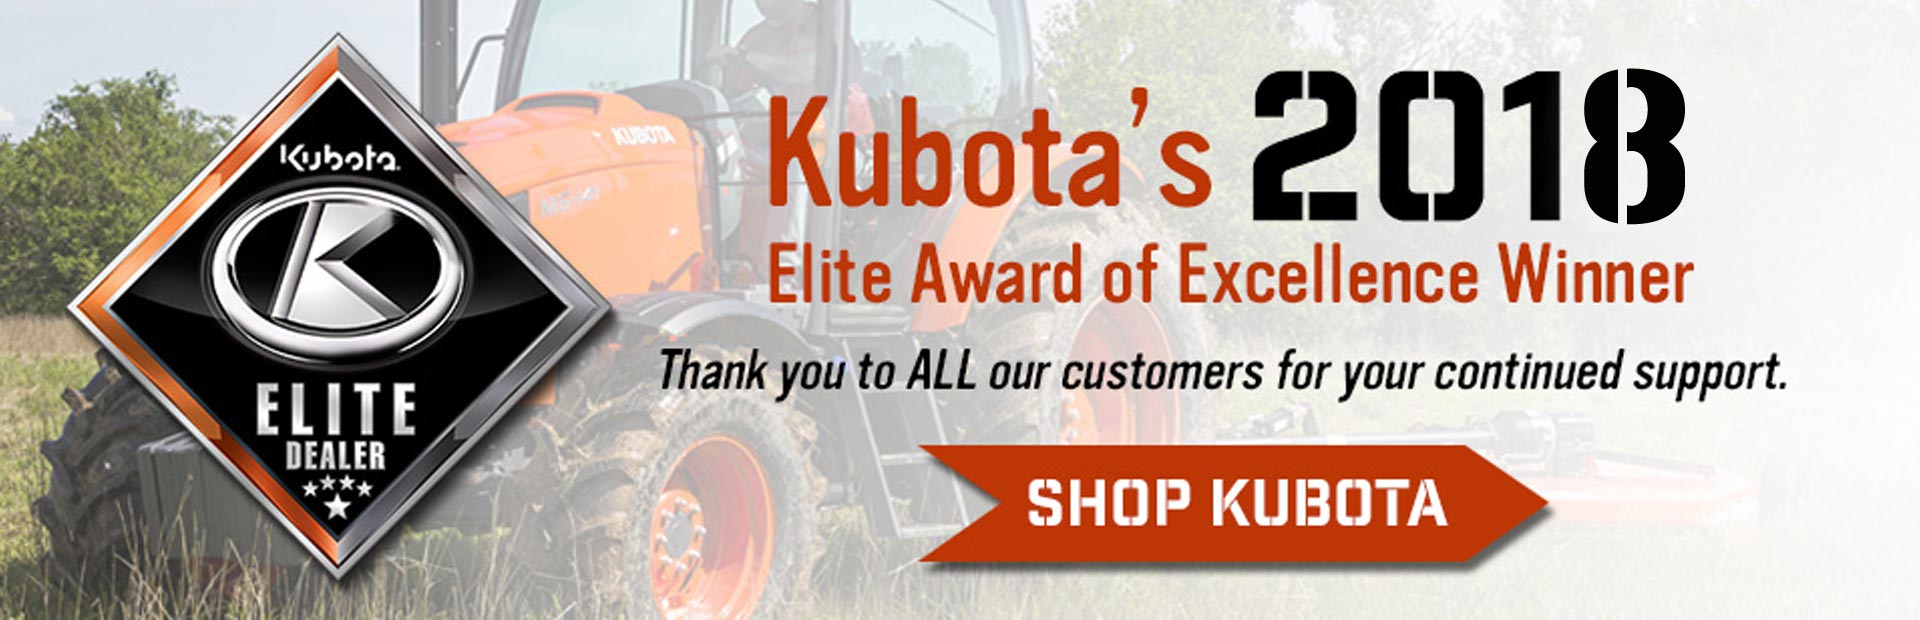 Kubota's 2018 Elite Award of Excellence Winner: Normangee Tractor & Implement, Co.